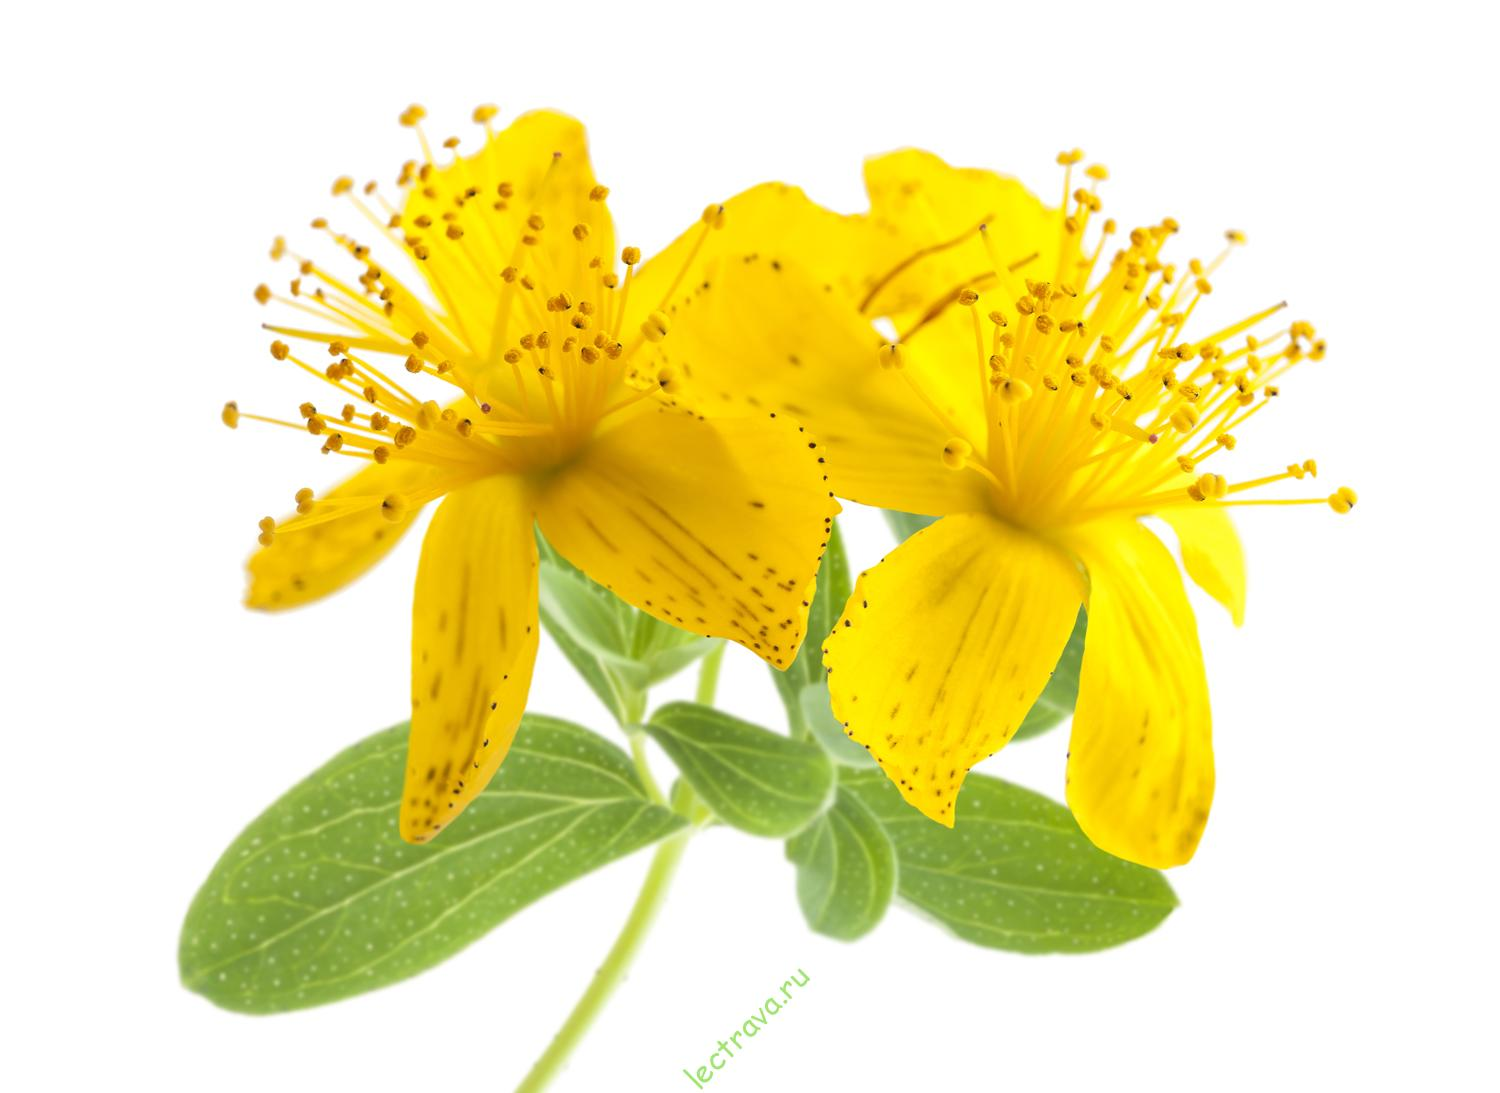 St john's wort photo